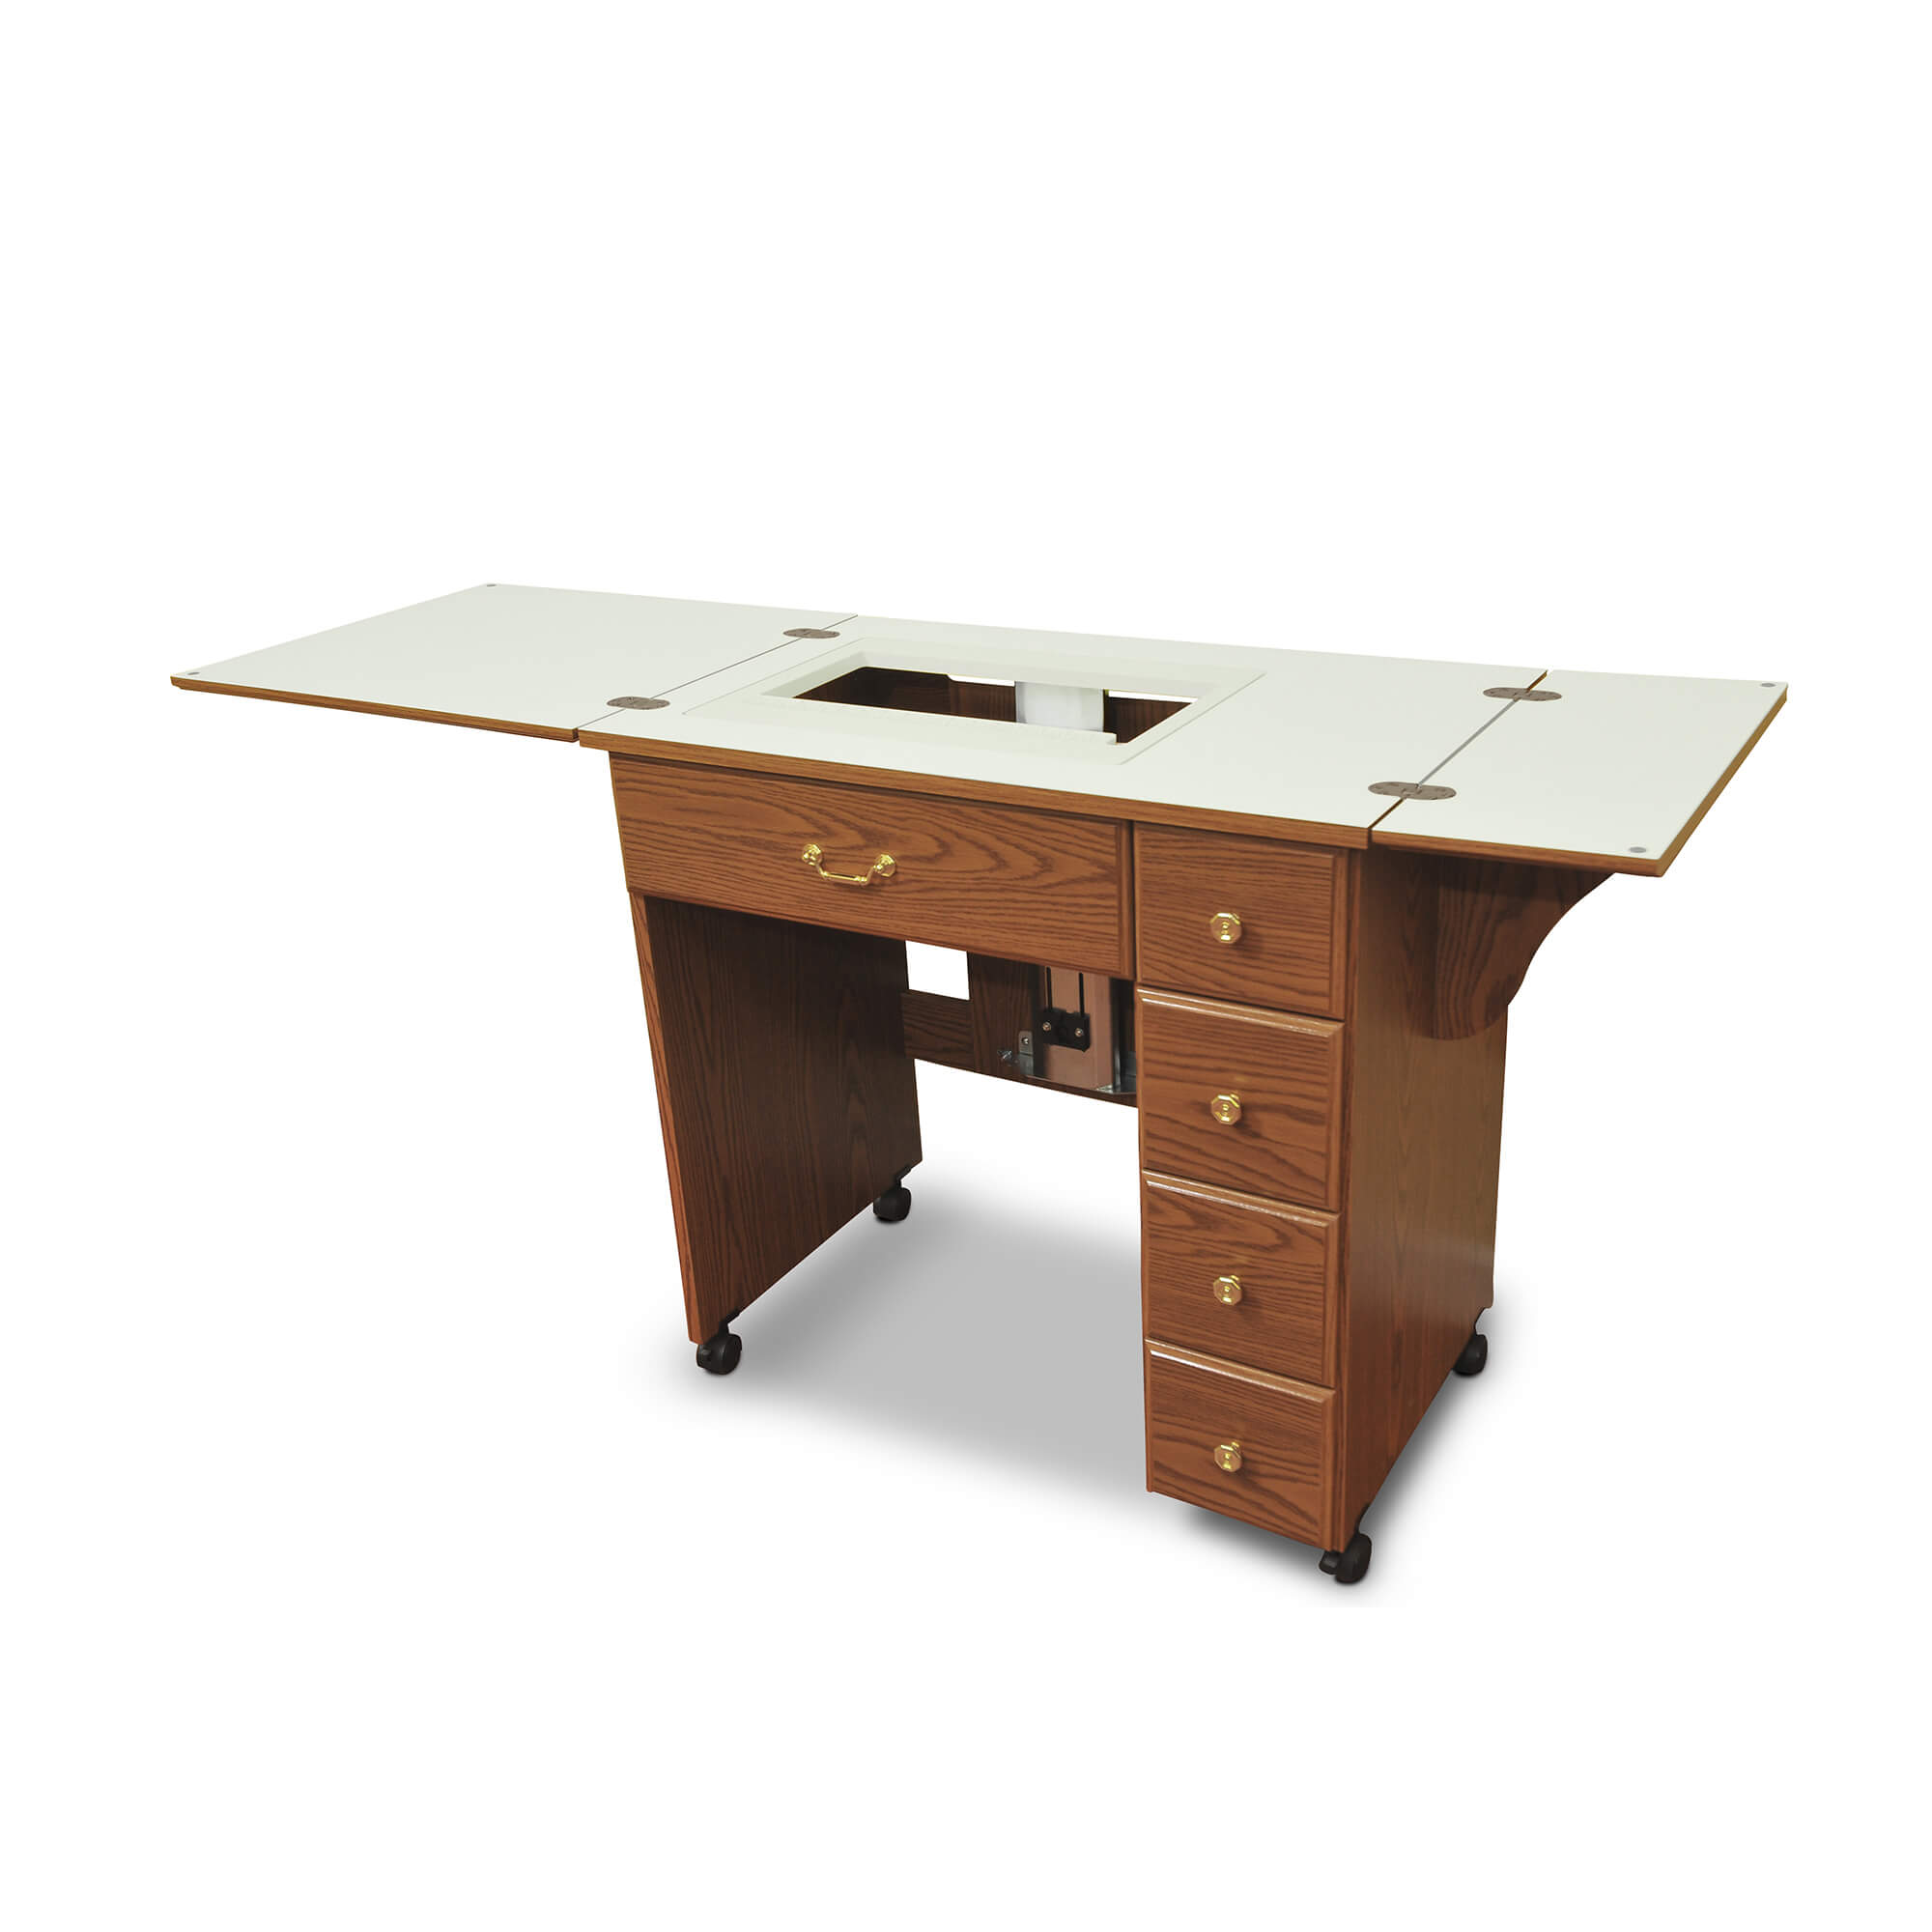 Auntie Cabinet Arrow Sewing Cabinets